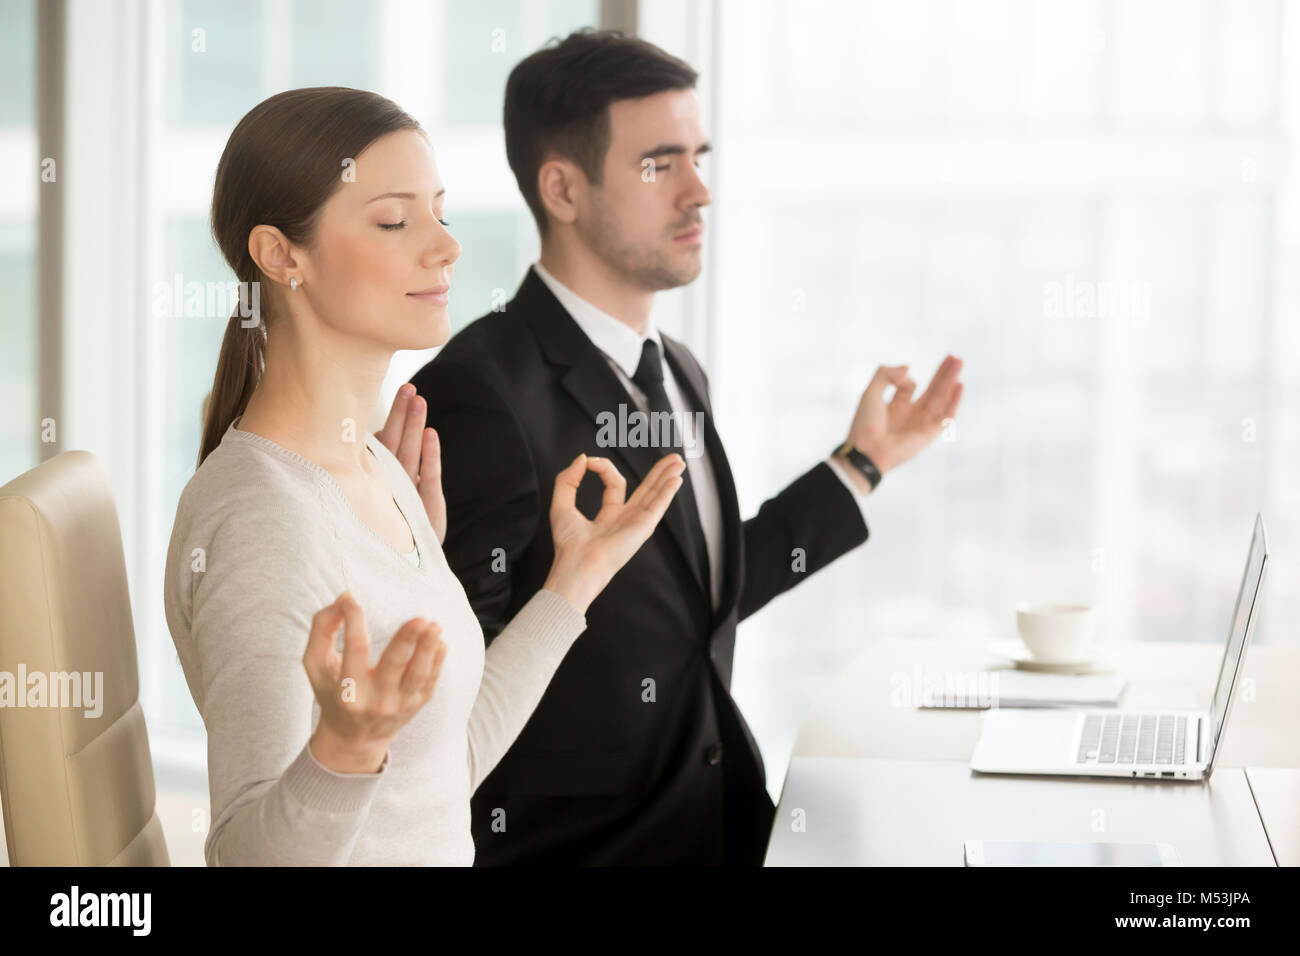 Young business leaders practice yoga at workplace - Stock Image